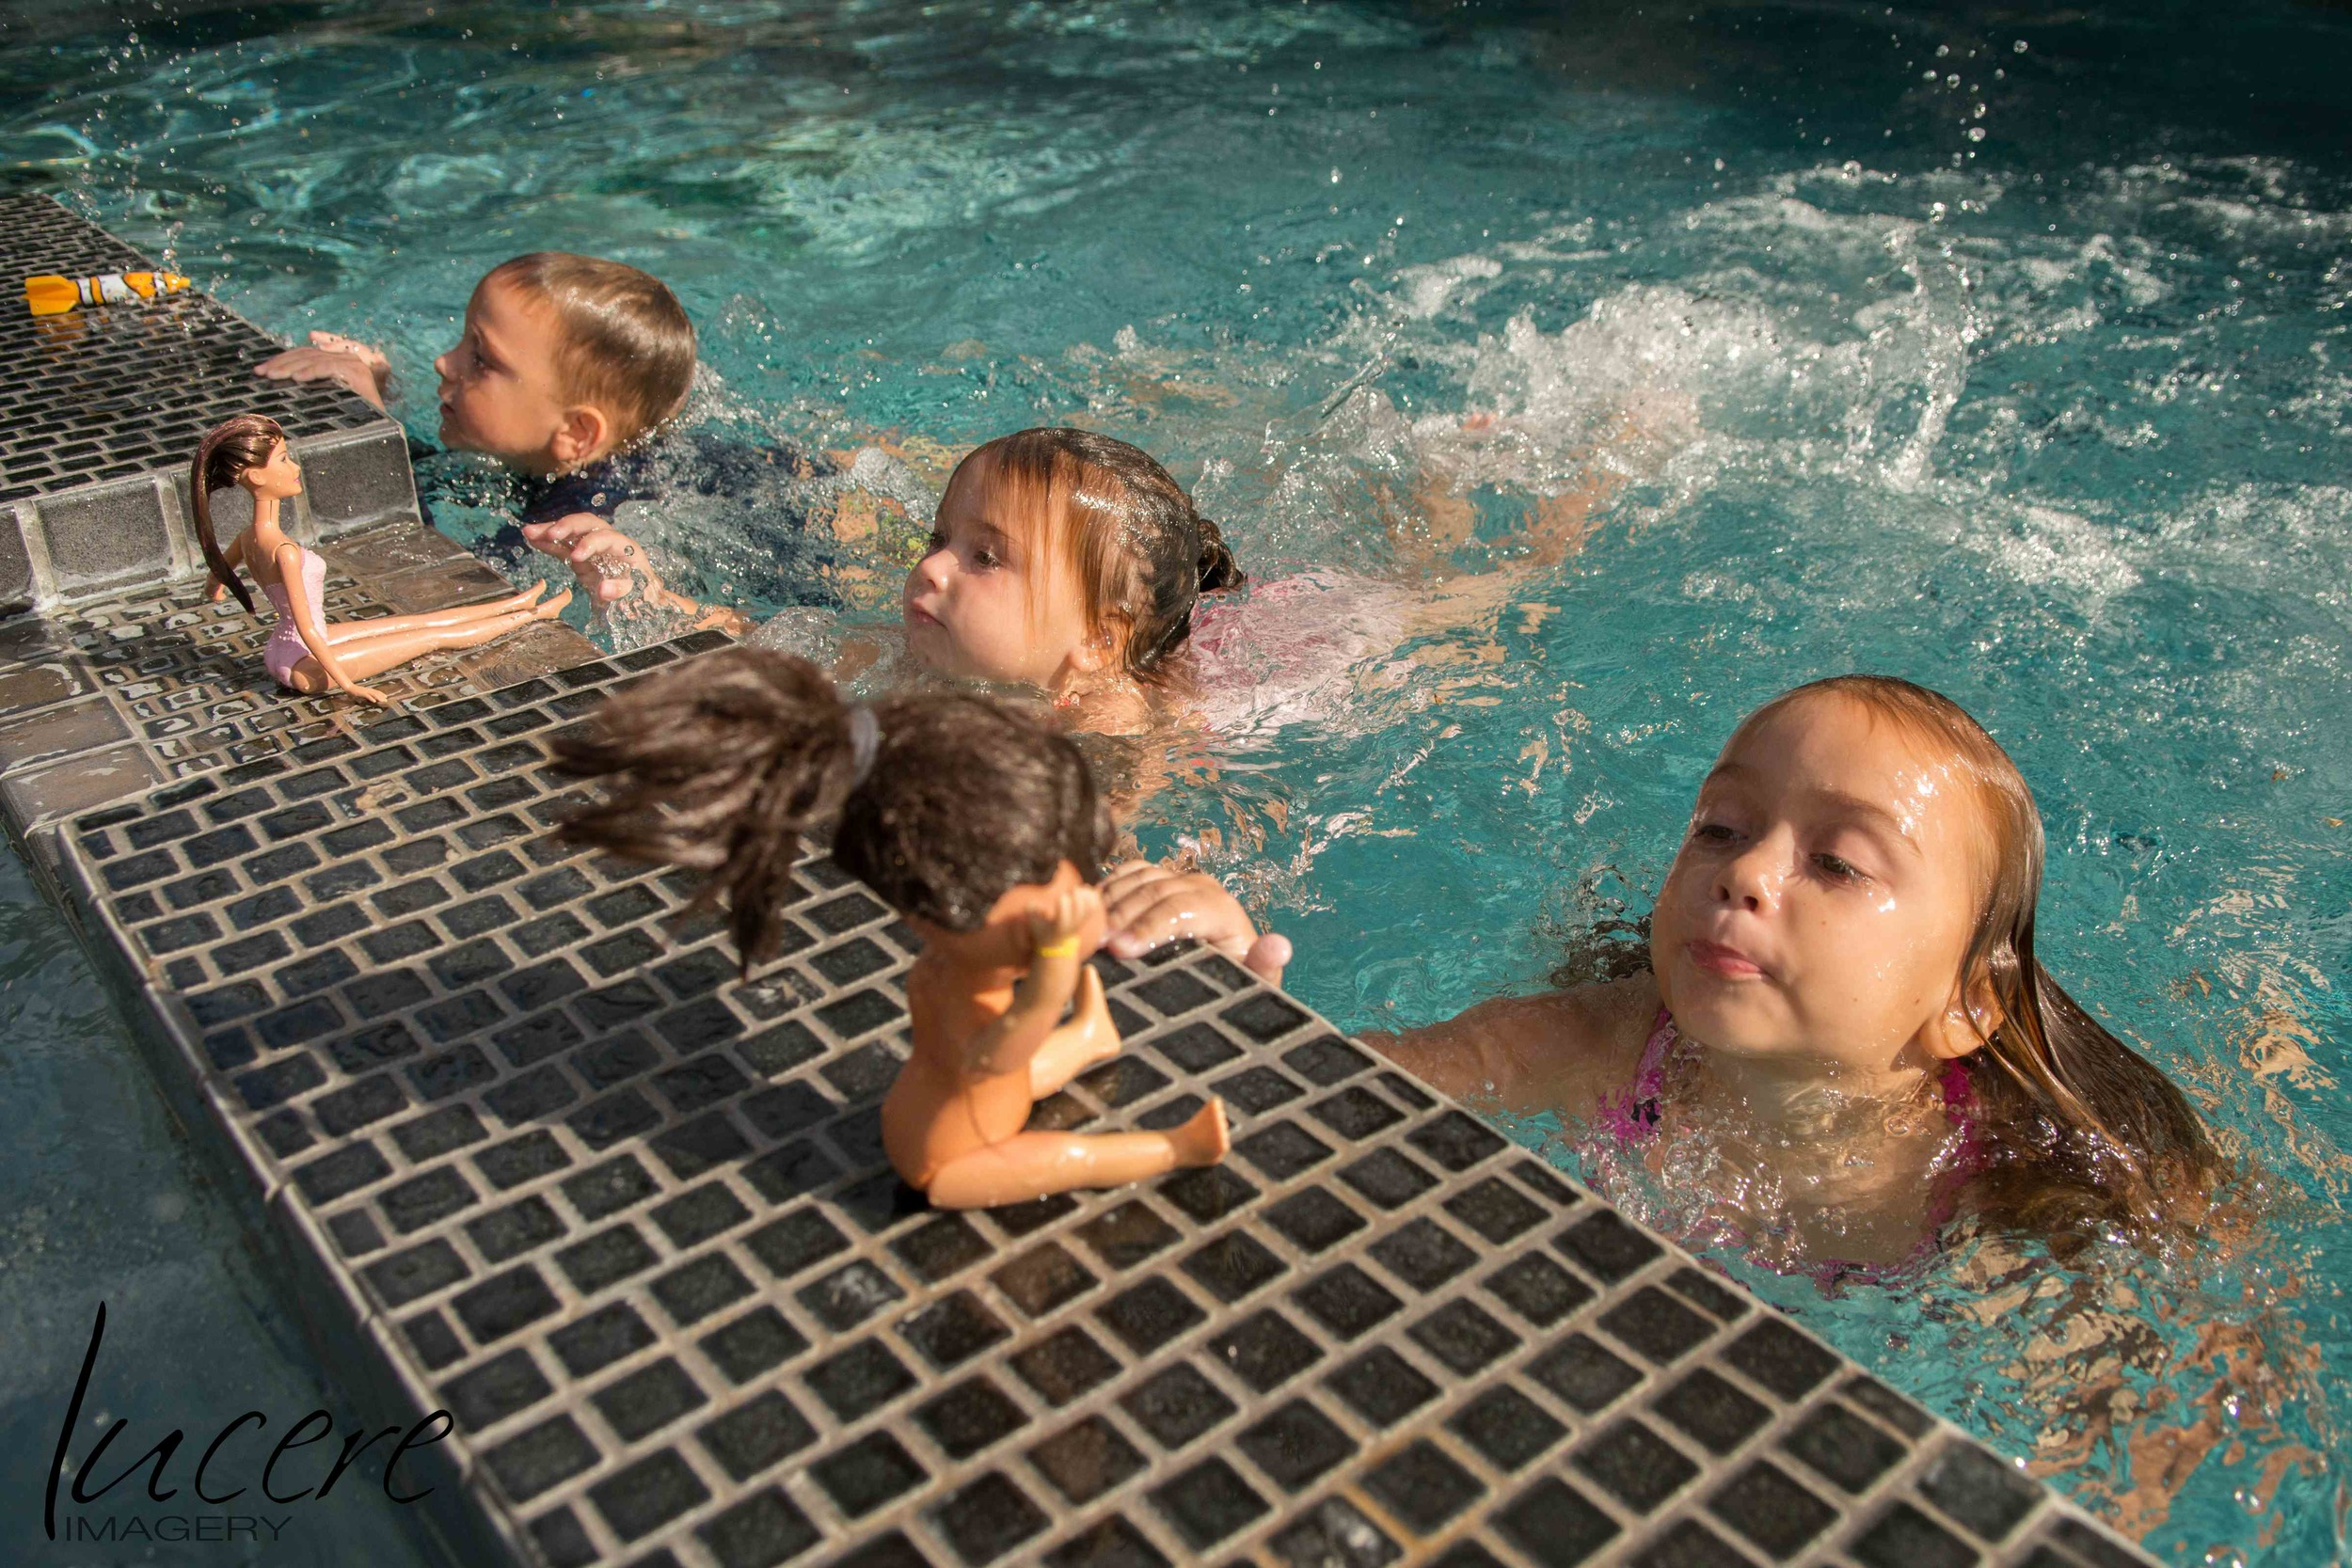 Some commonly asked questions by parents of children learning to swim.